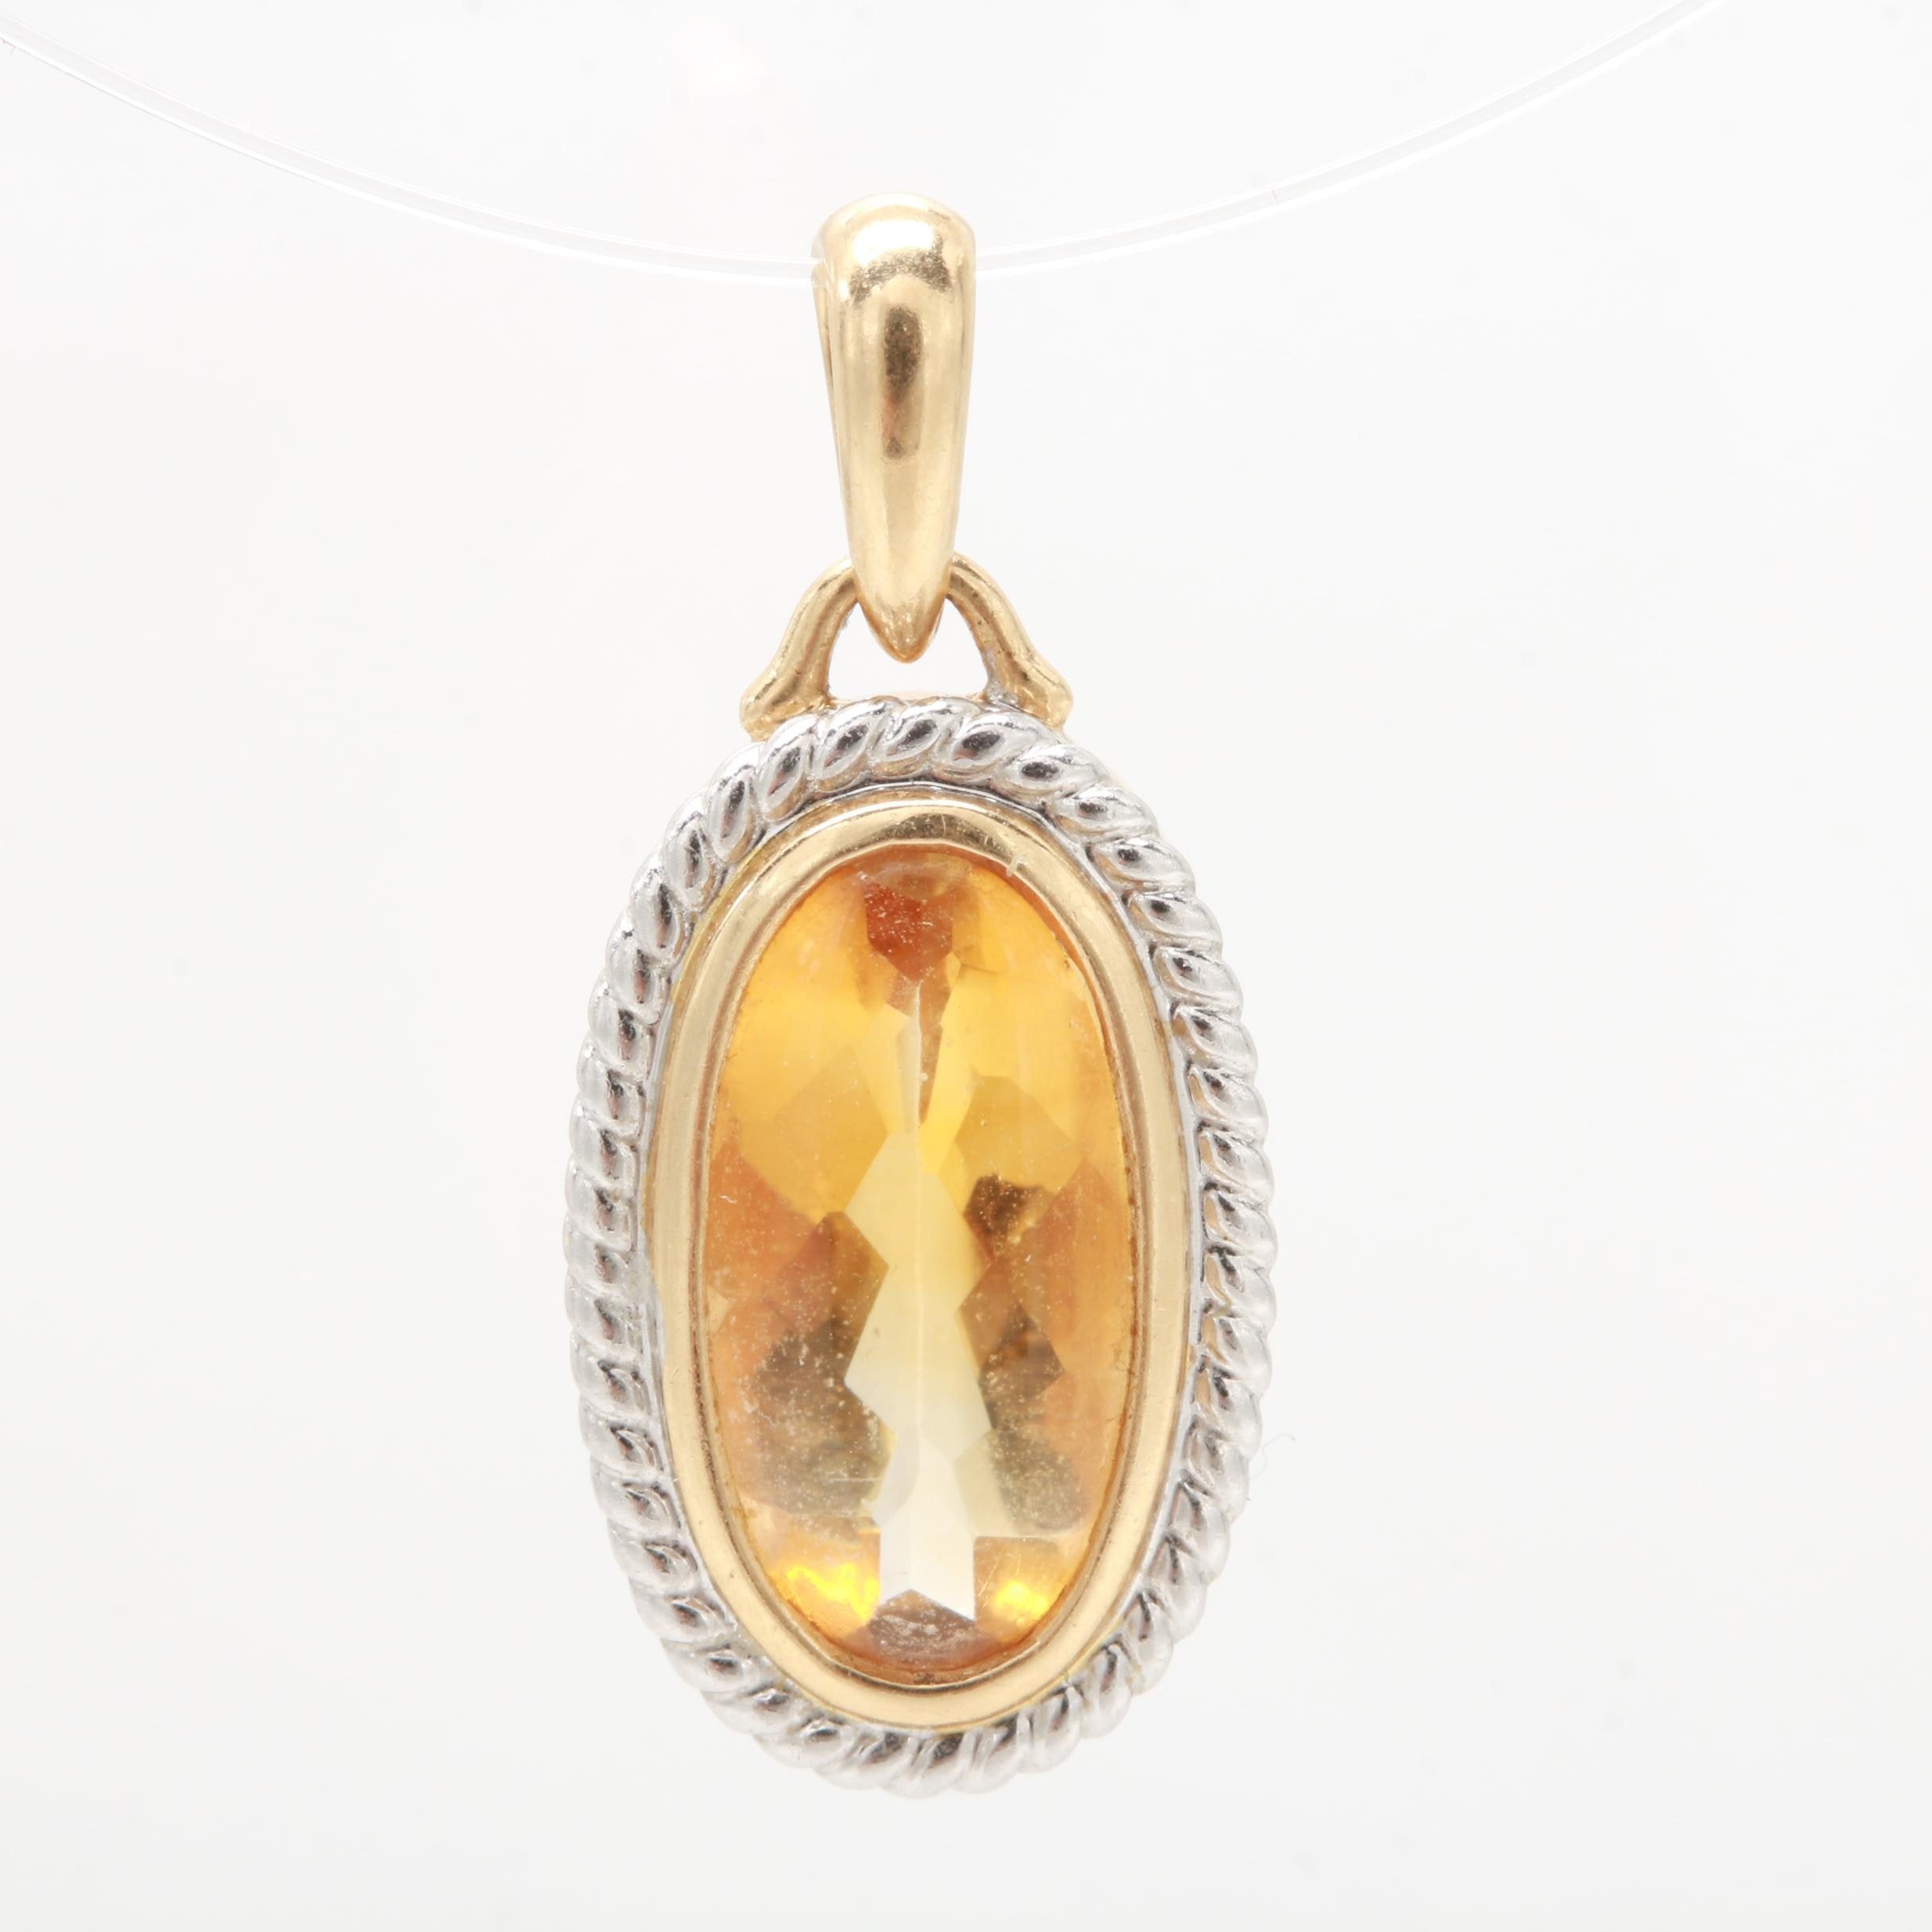 14K Yellow Gold Citrine Pendant with White Gold Accent